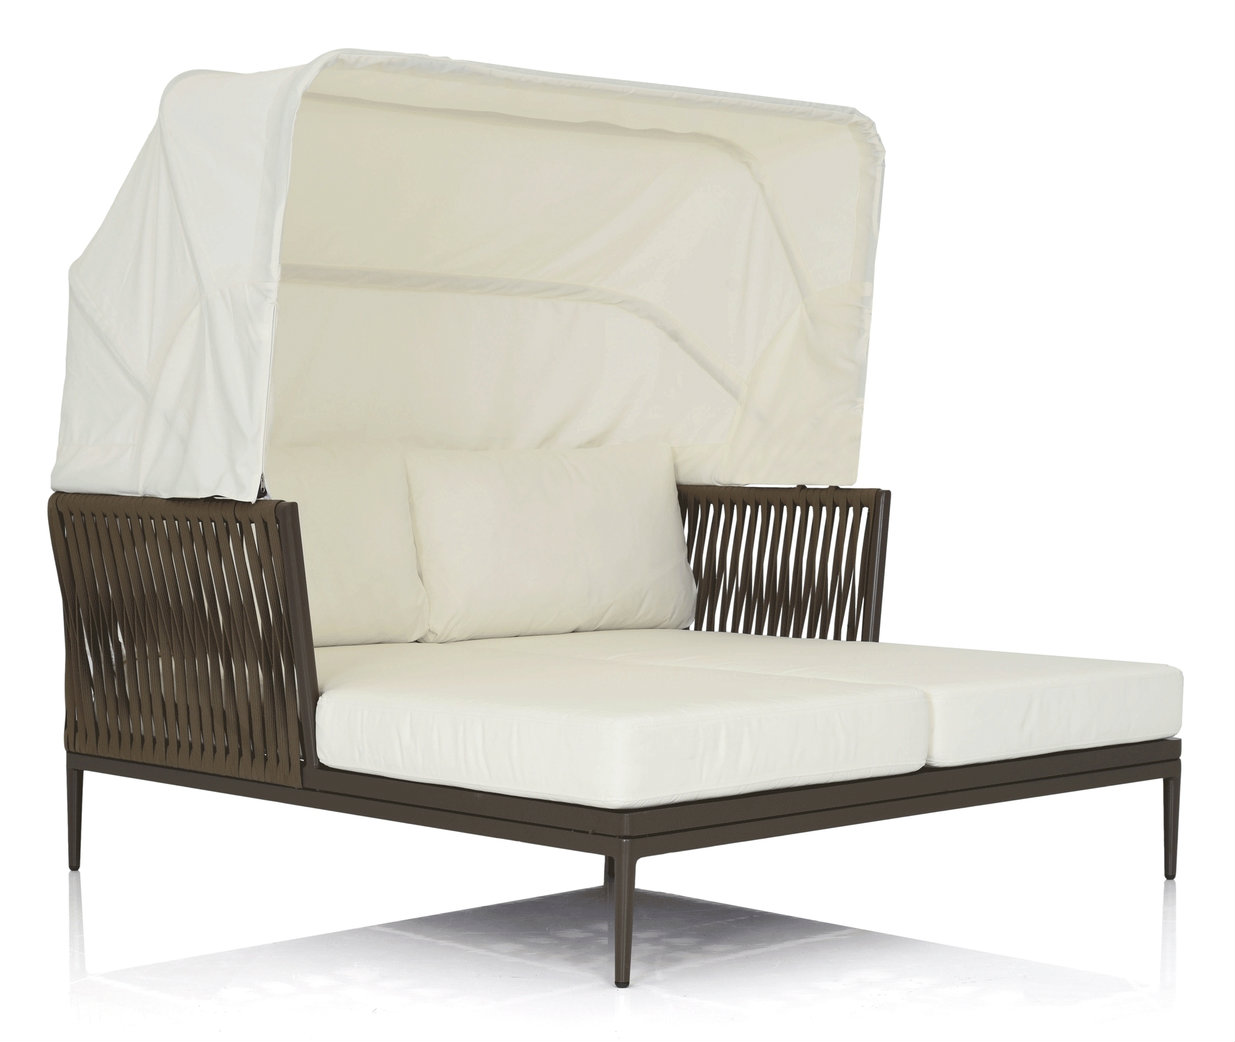 Pop Up Canopy Casbah Daybed With Pop Up Canopy